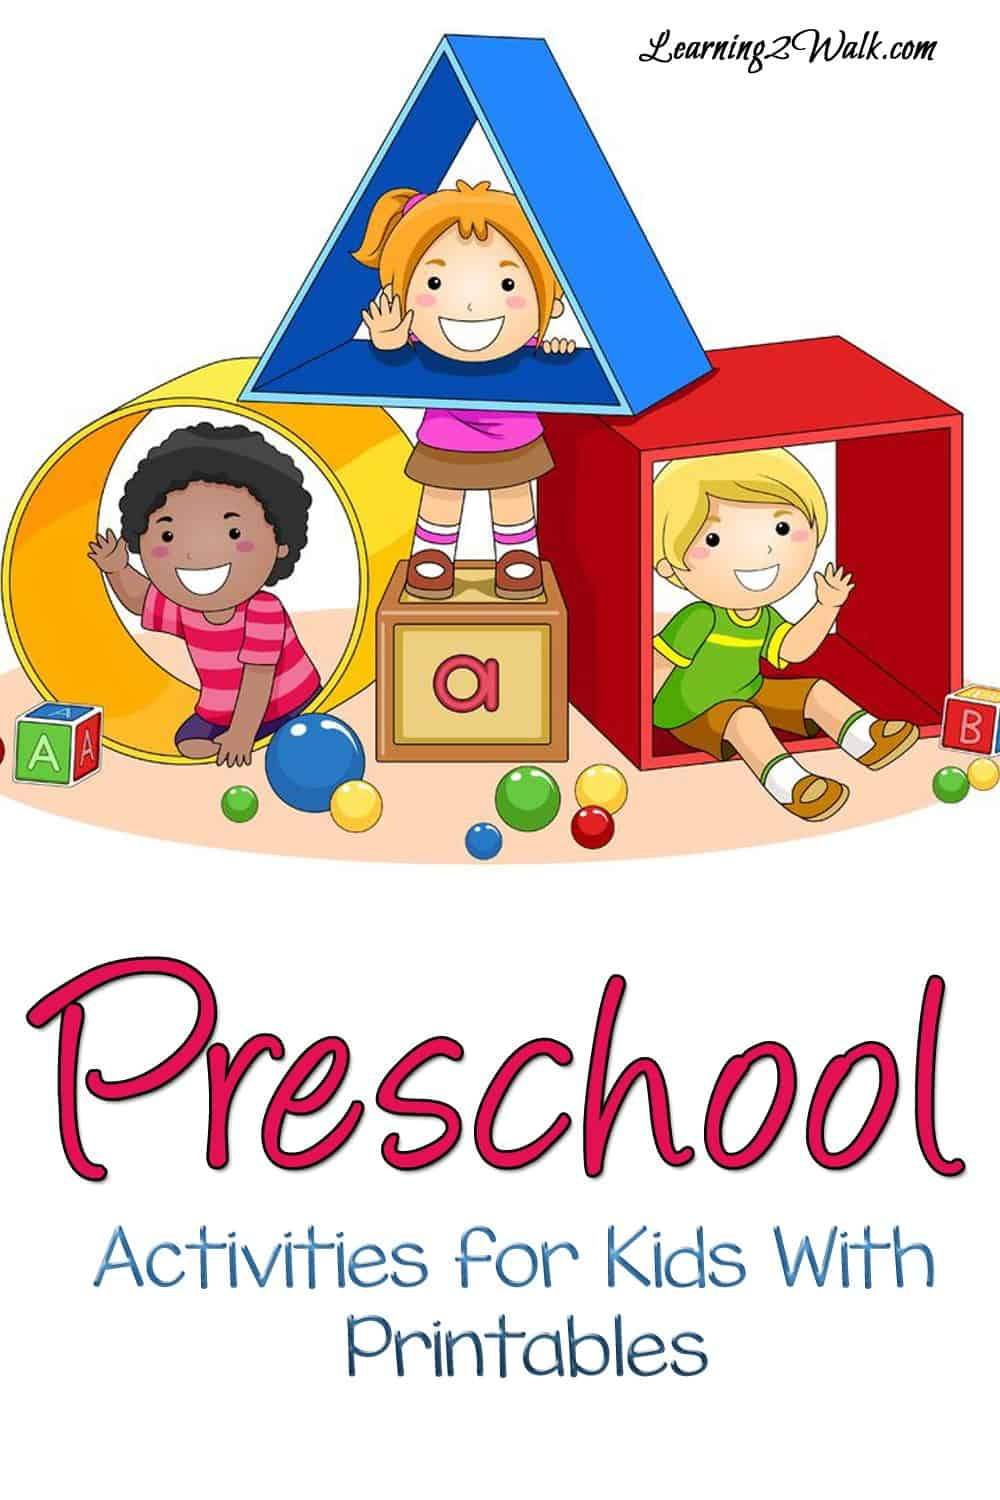 Preschool can be such a fun age. Use a few of these preschool activities for kids with printables as a supplement.